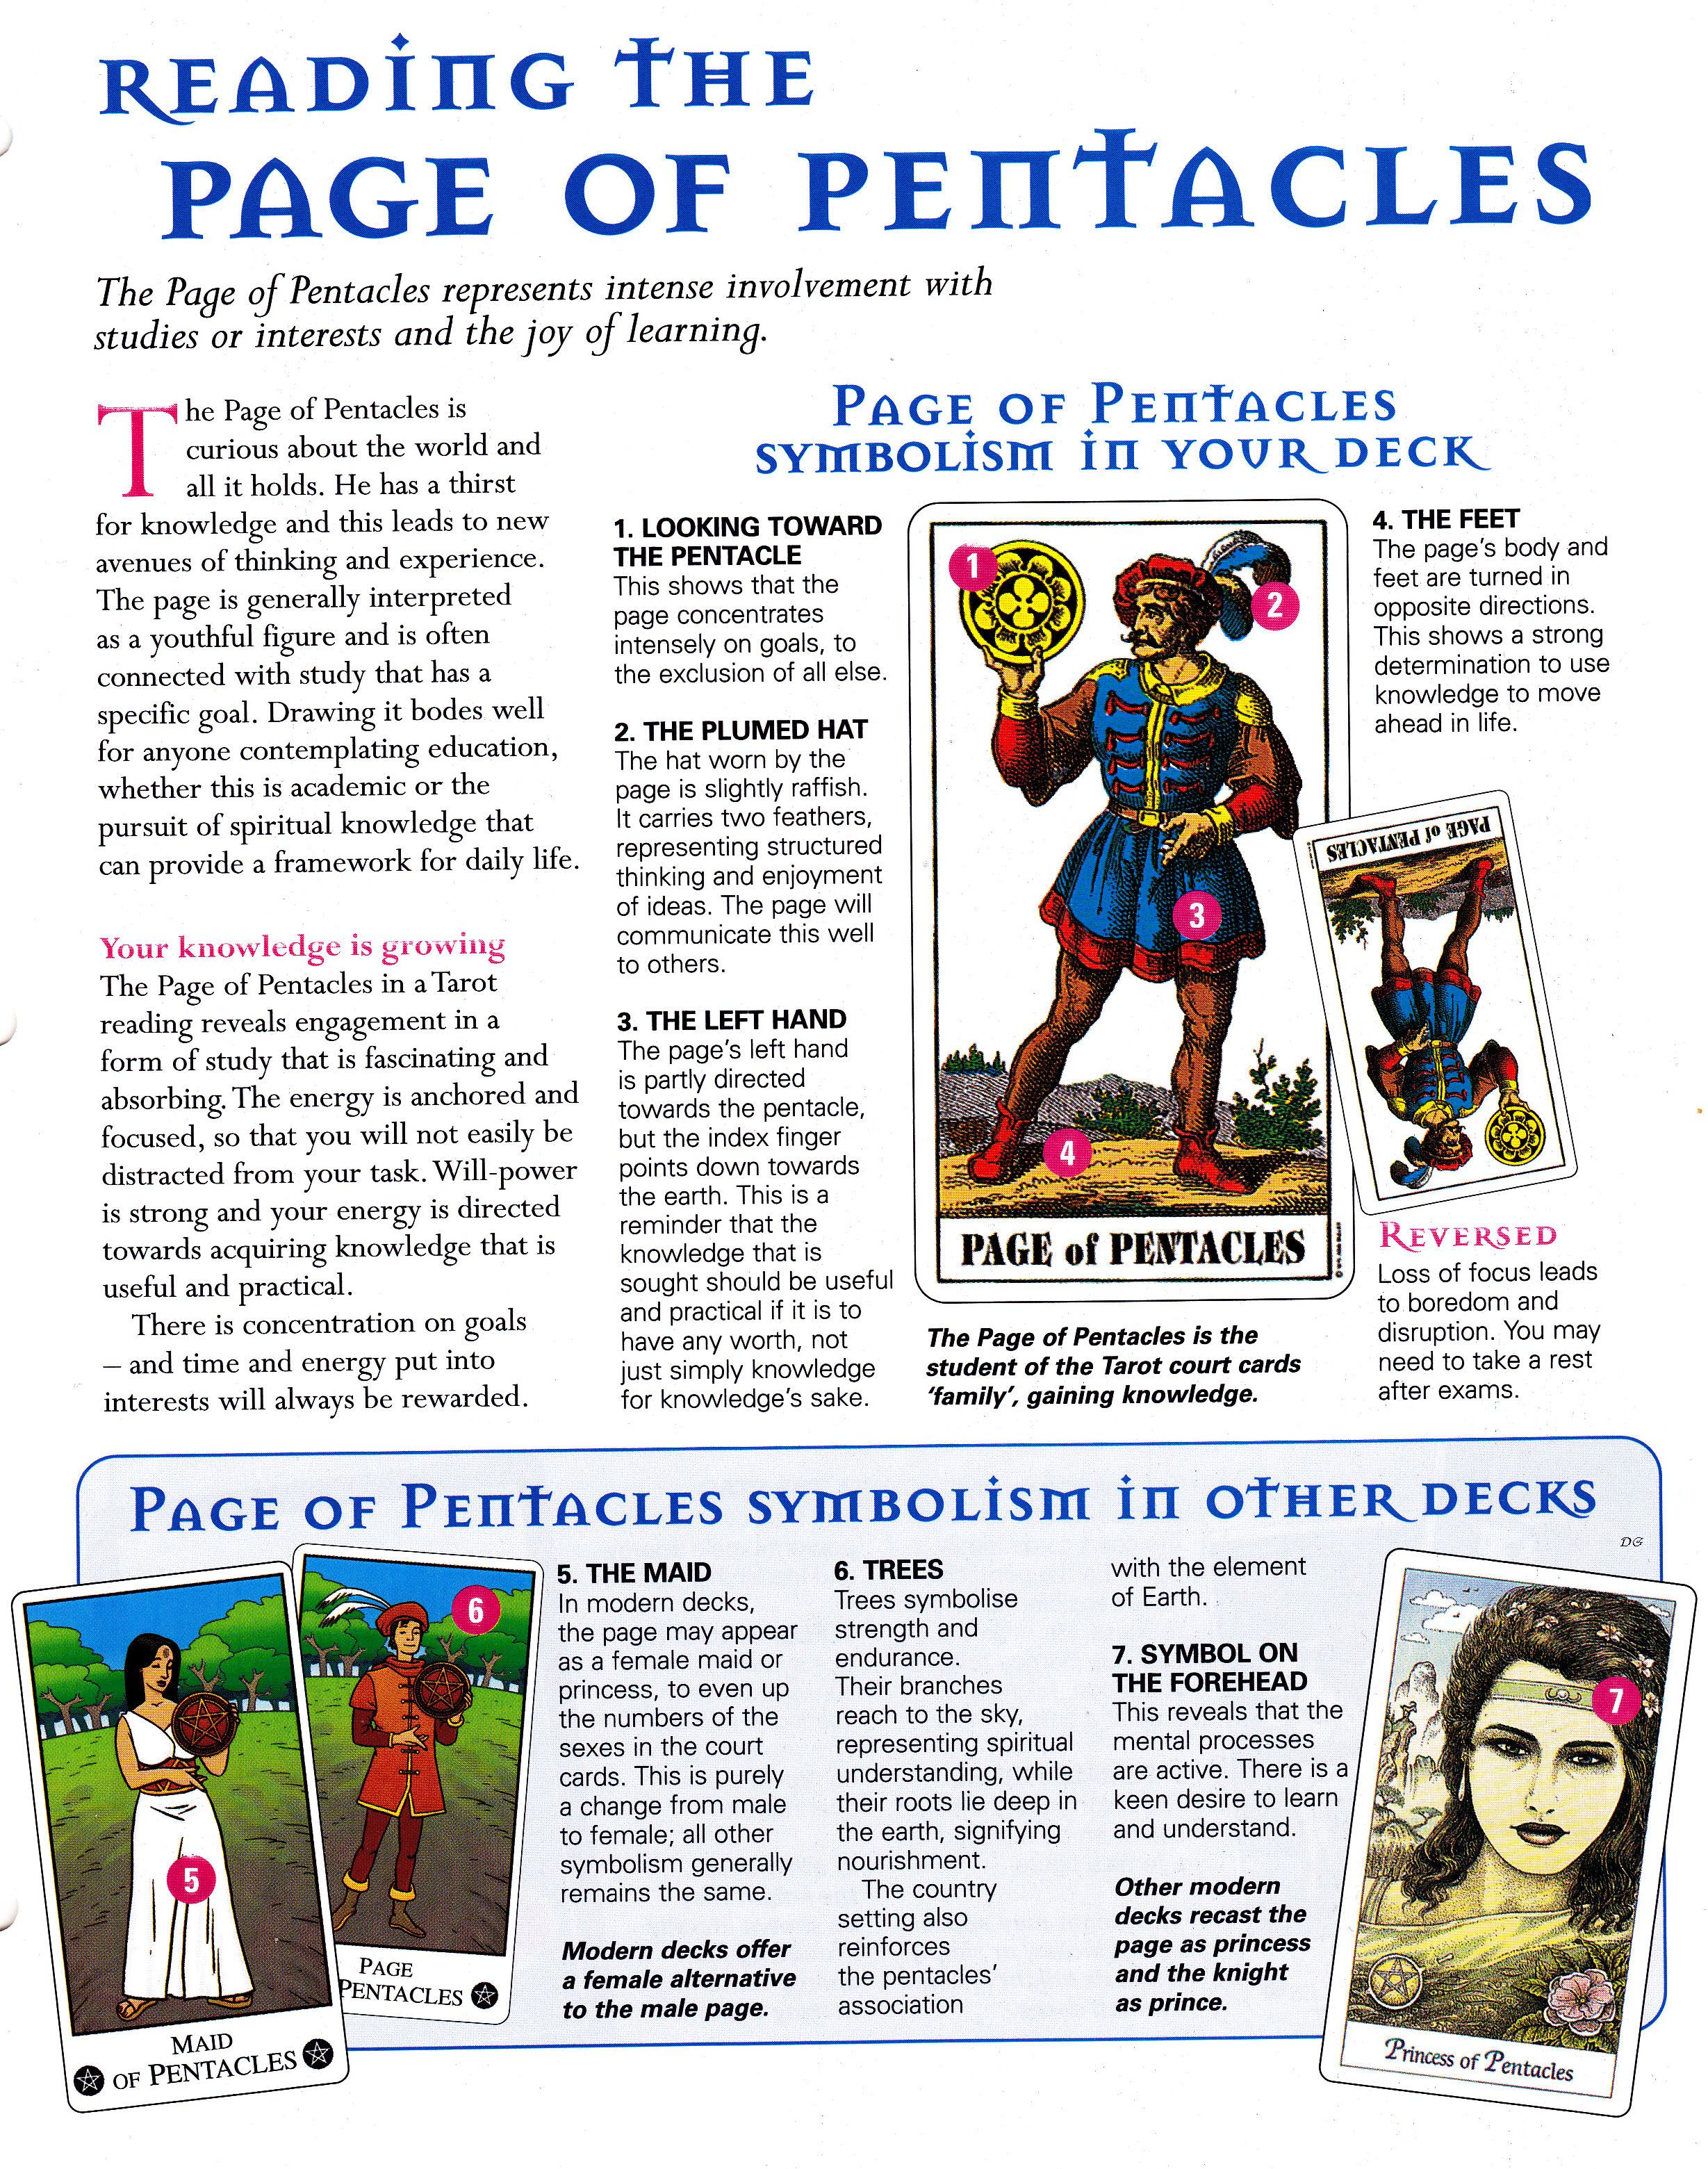 Reading the page of pentacles